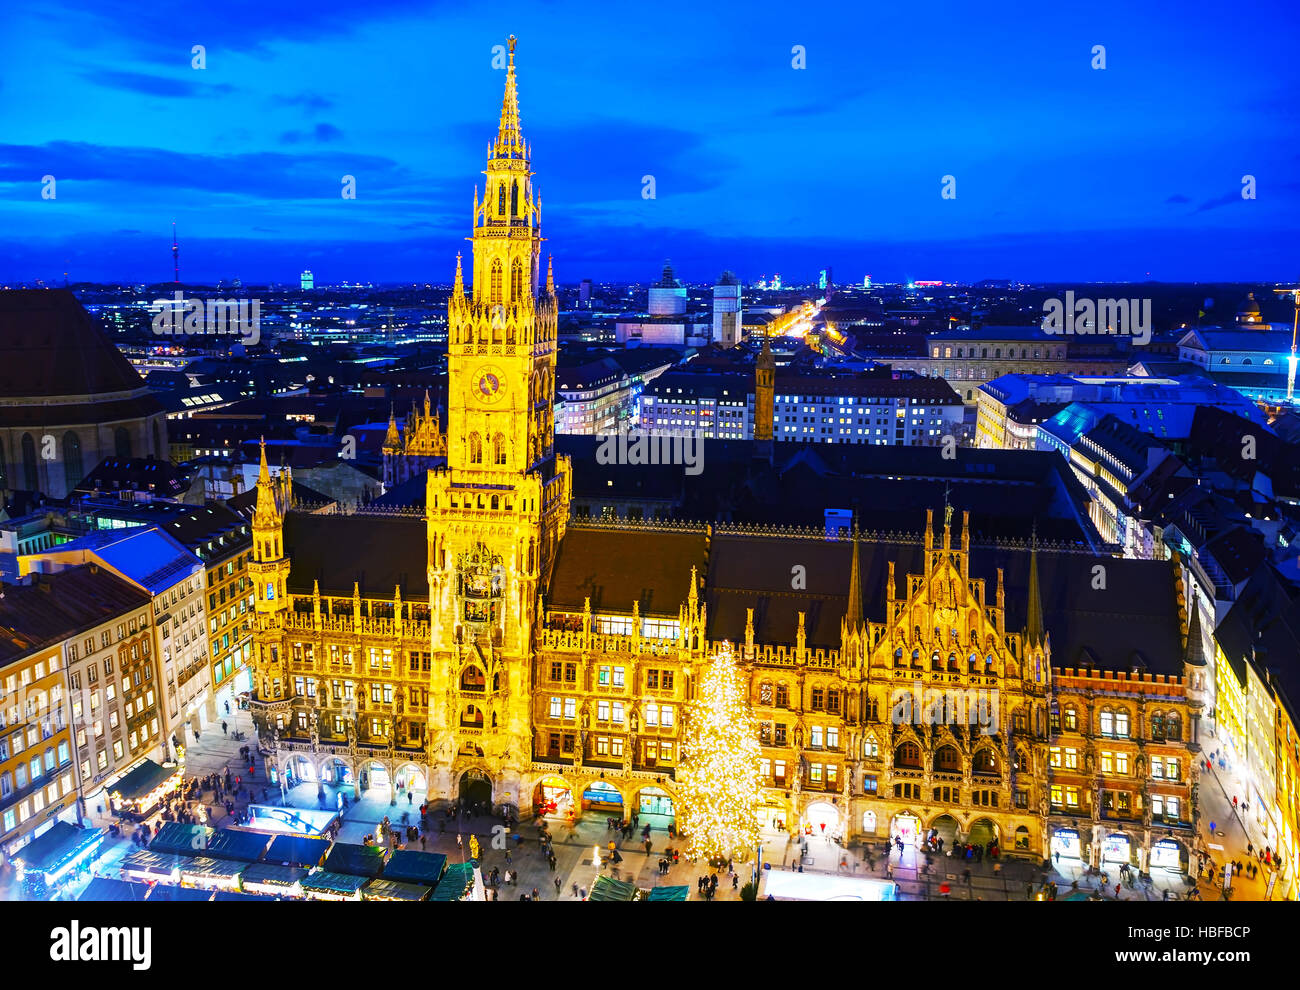 MUNICH - NOVEMBER 30: Aerial overview of Marienplatz with people on November 30, 2015 in Munich. It's the 3rd - Stock Image